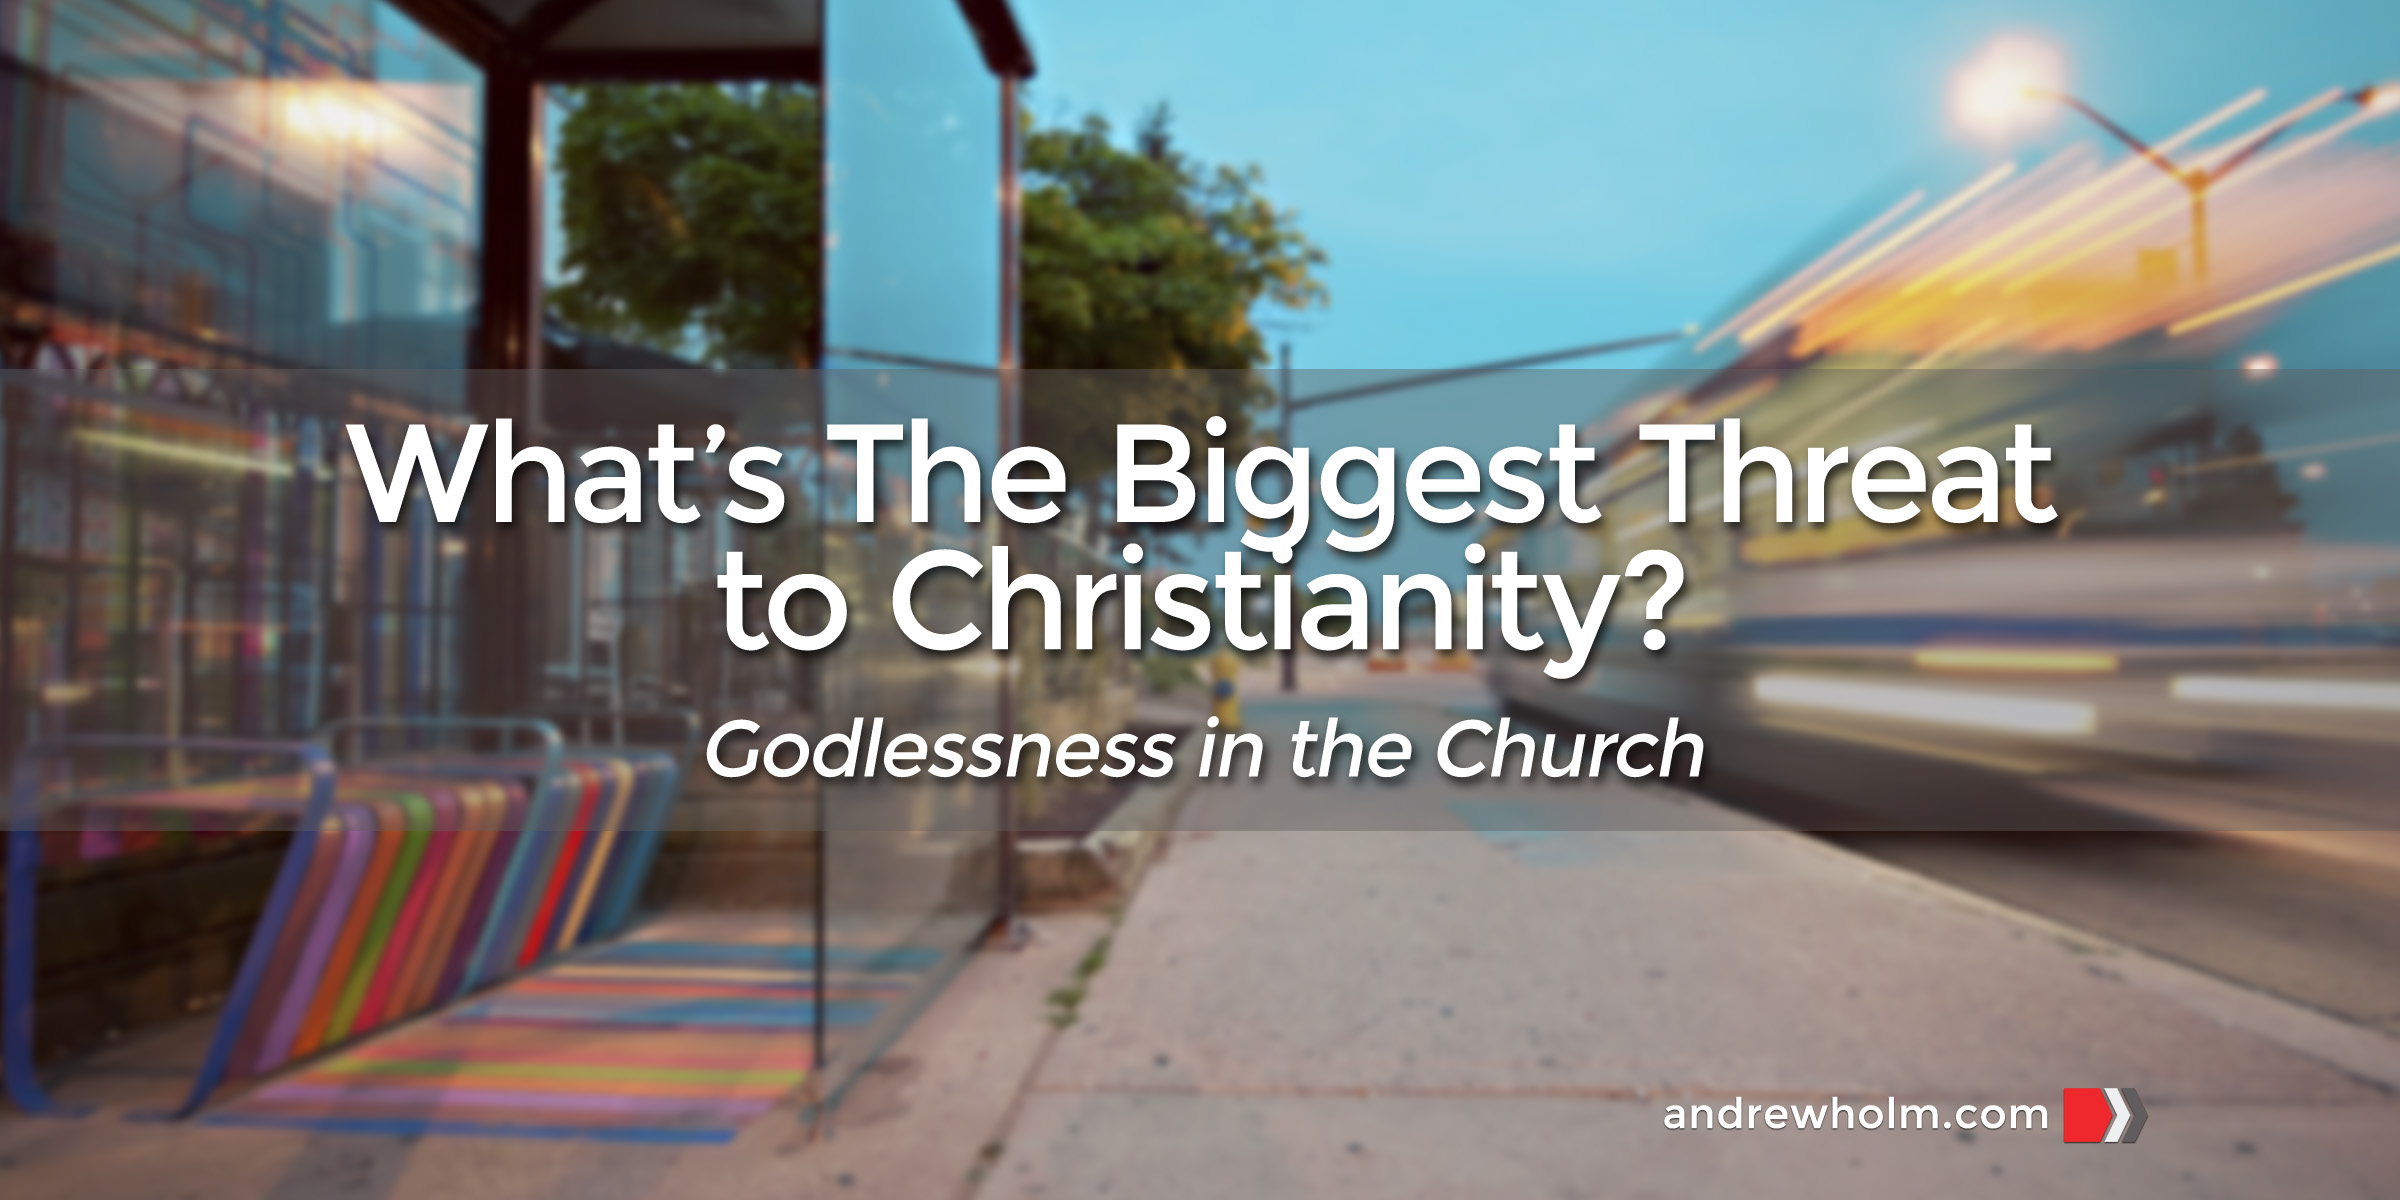 What's The Biggest Threat to Christianity?